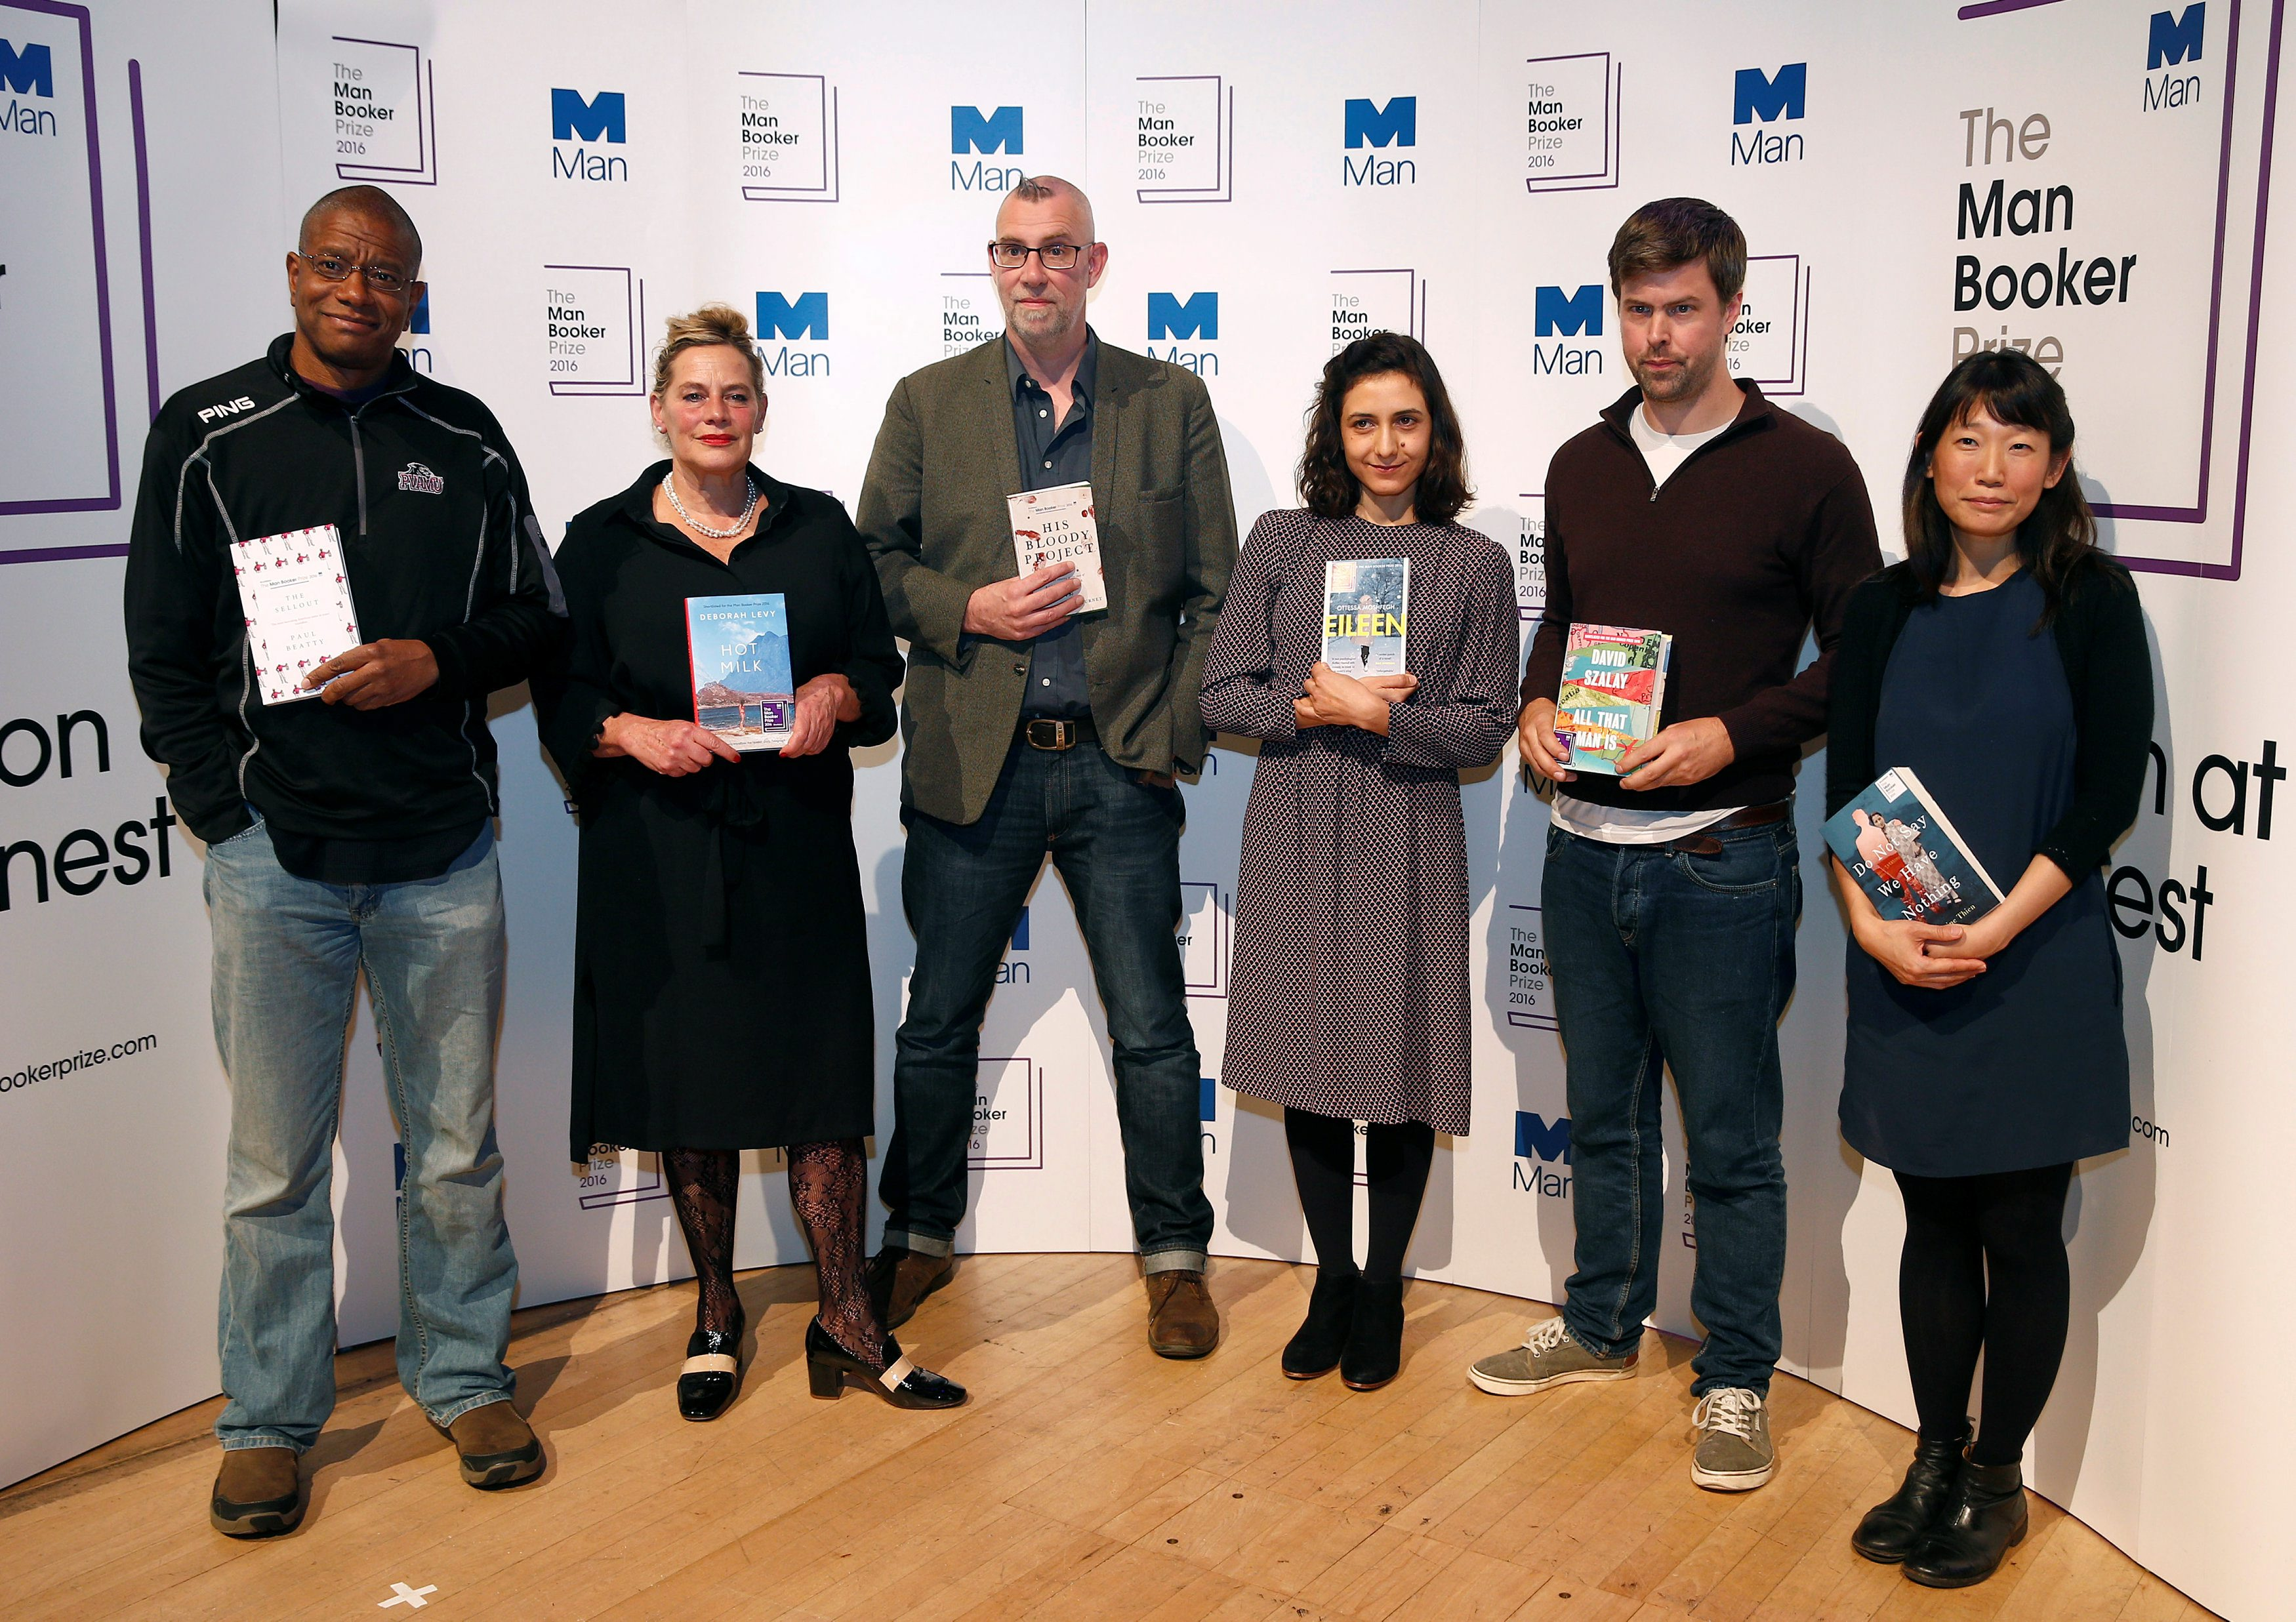 The six Man Booker shortlisted fiction authors, (L to R) Paul Beatty, Deborah Levy, Graeme Macrae Burnet, Ottessa Moshfegh, David Szalay and Madeleine Thien, pose with their books, during a photo-call on the eve of the prize giving in London, Britain October 24, 2016.  REUTERS/Peter Nicholls